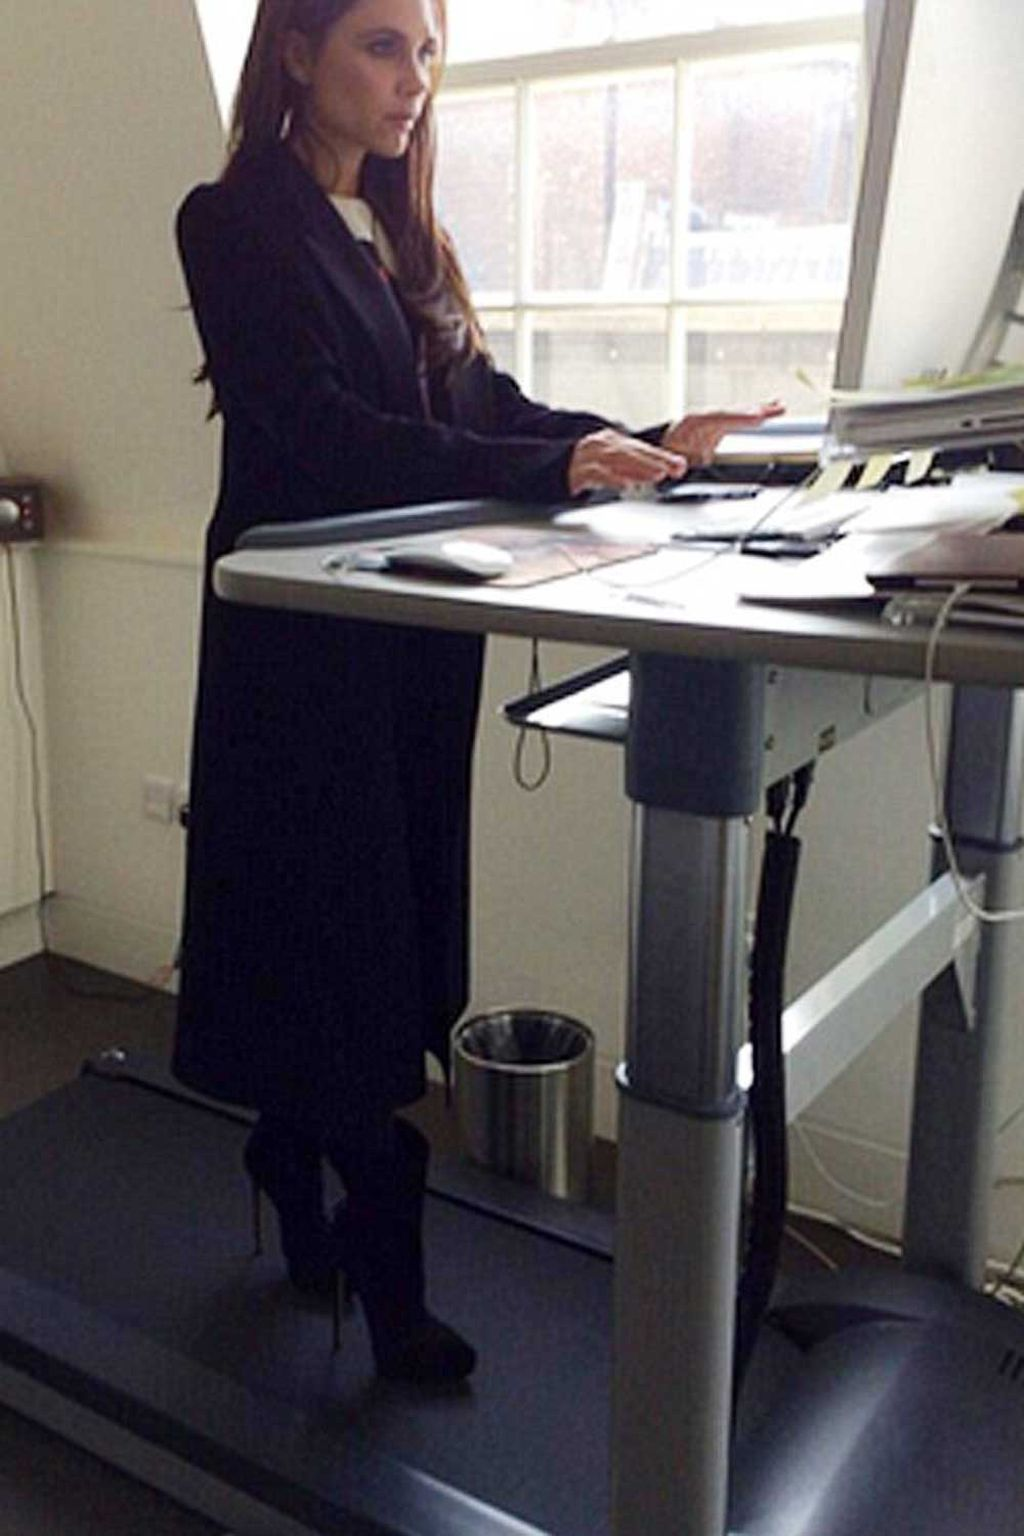 Men And Women Randomly Assigned Them To Workplaces With Either Treadmill Desks Set Move At A Sd Of 2 4km Per Hour No Incline Or Regular